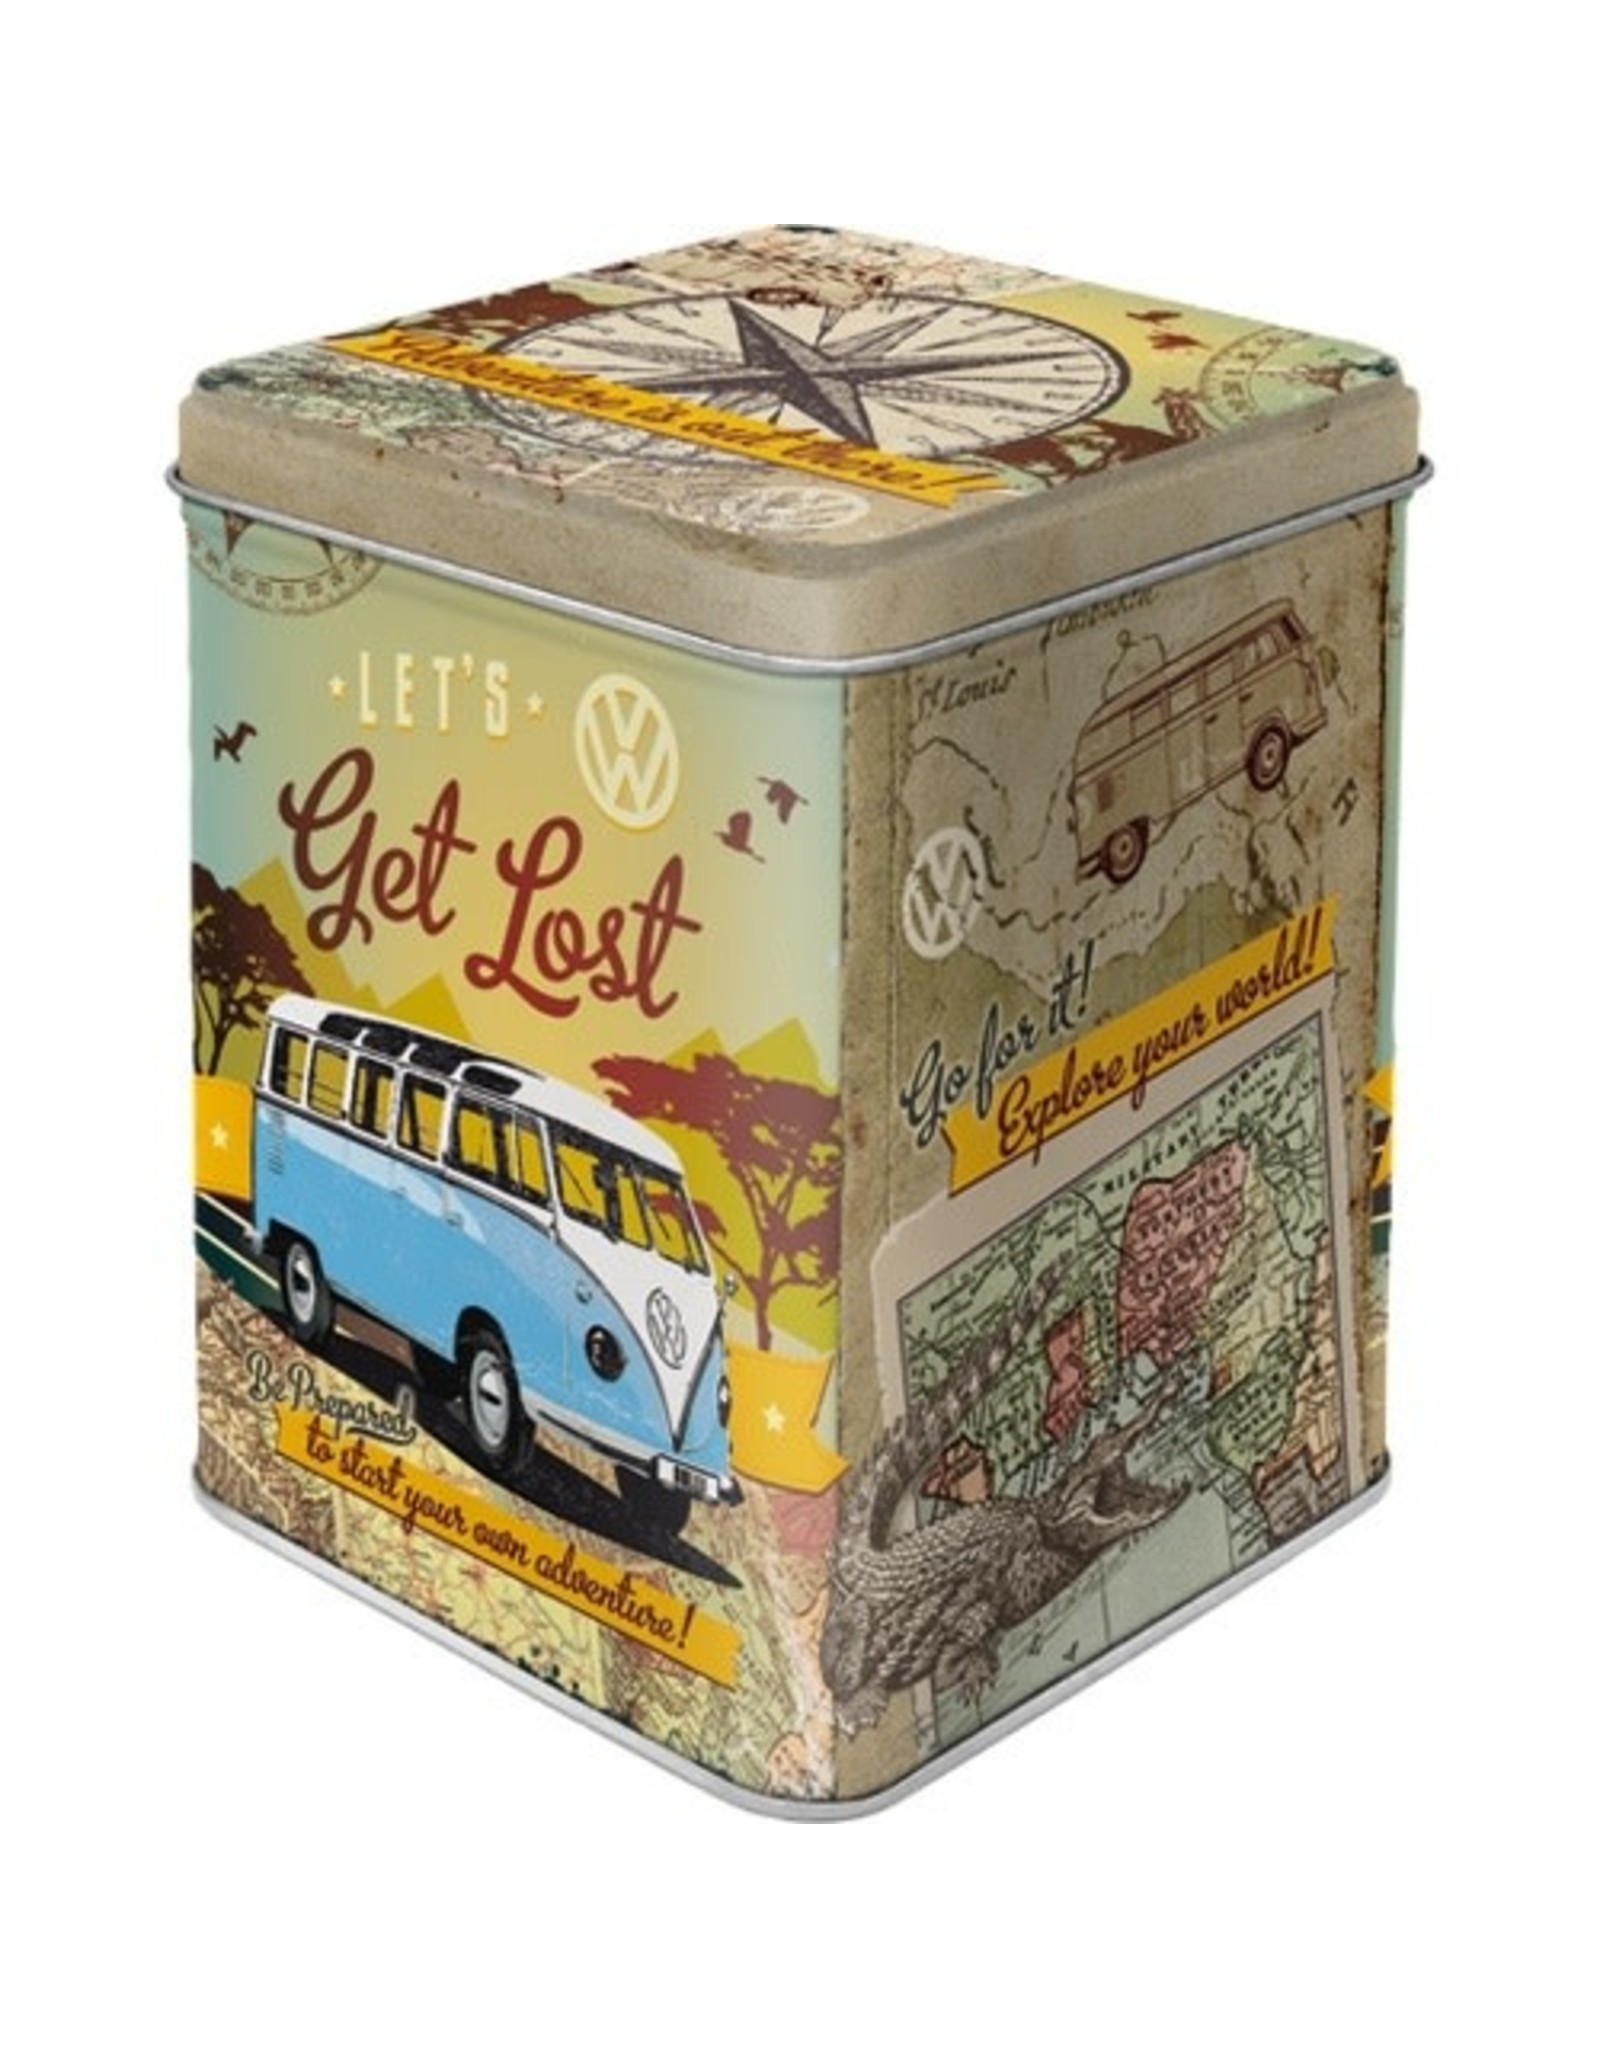 Nostalgic Art tea box - let's get lost